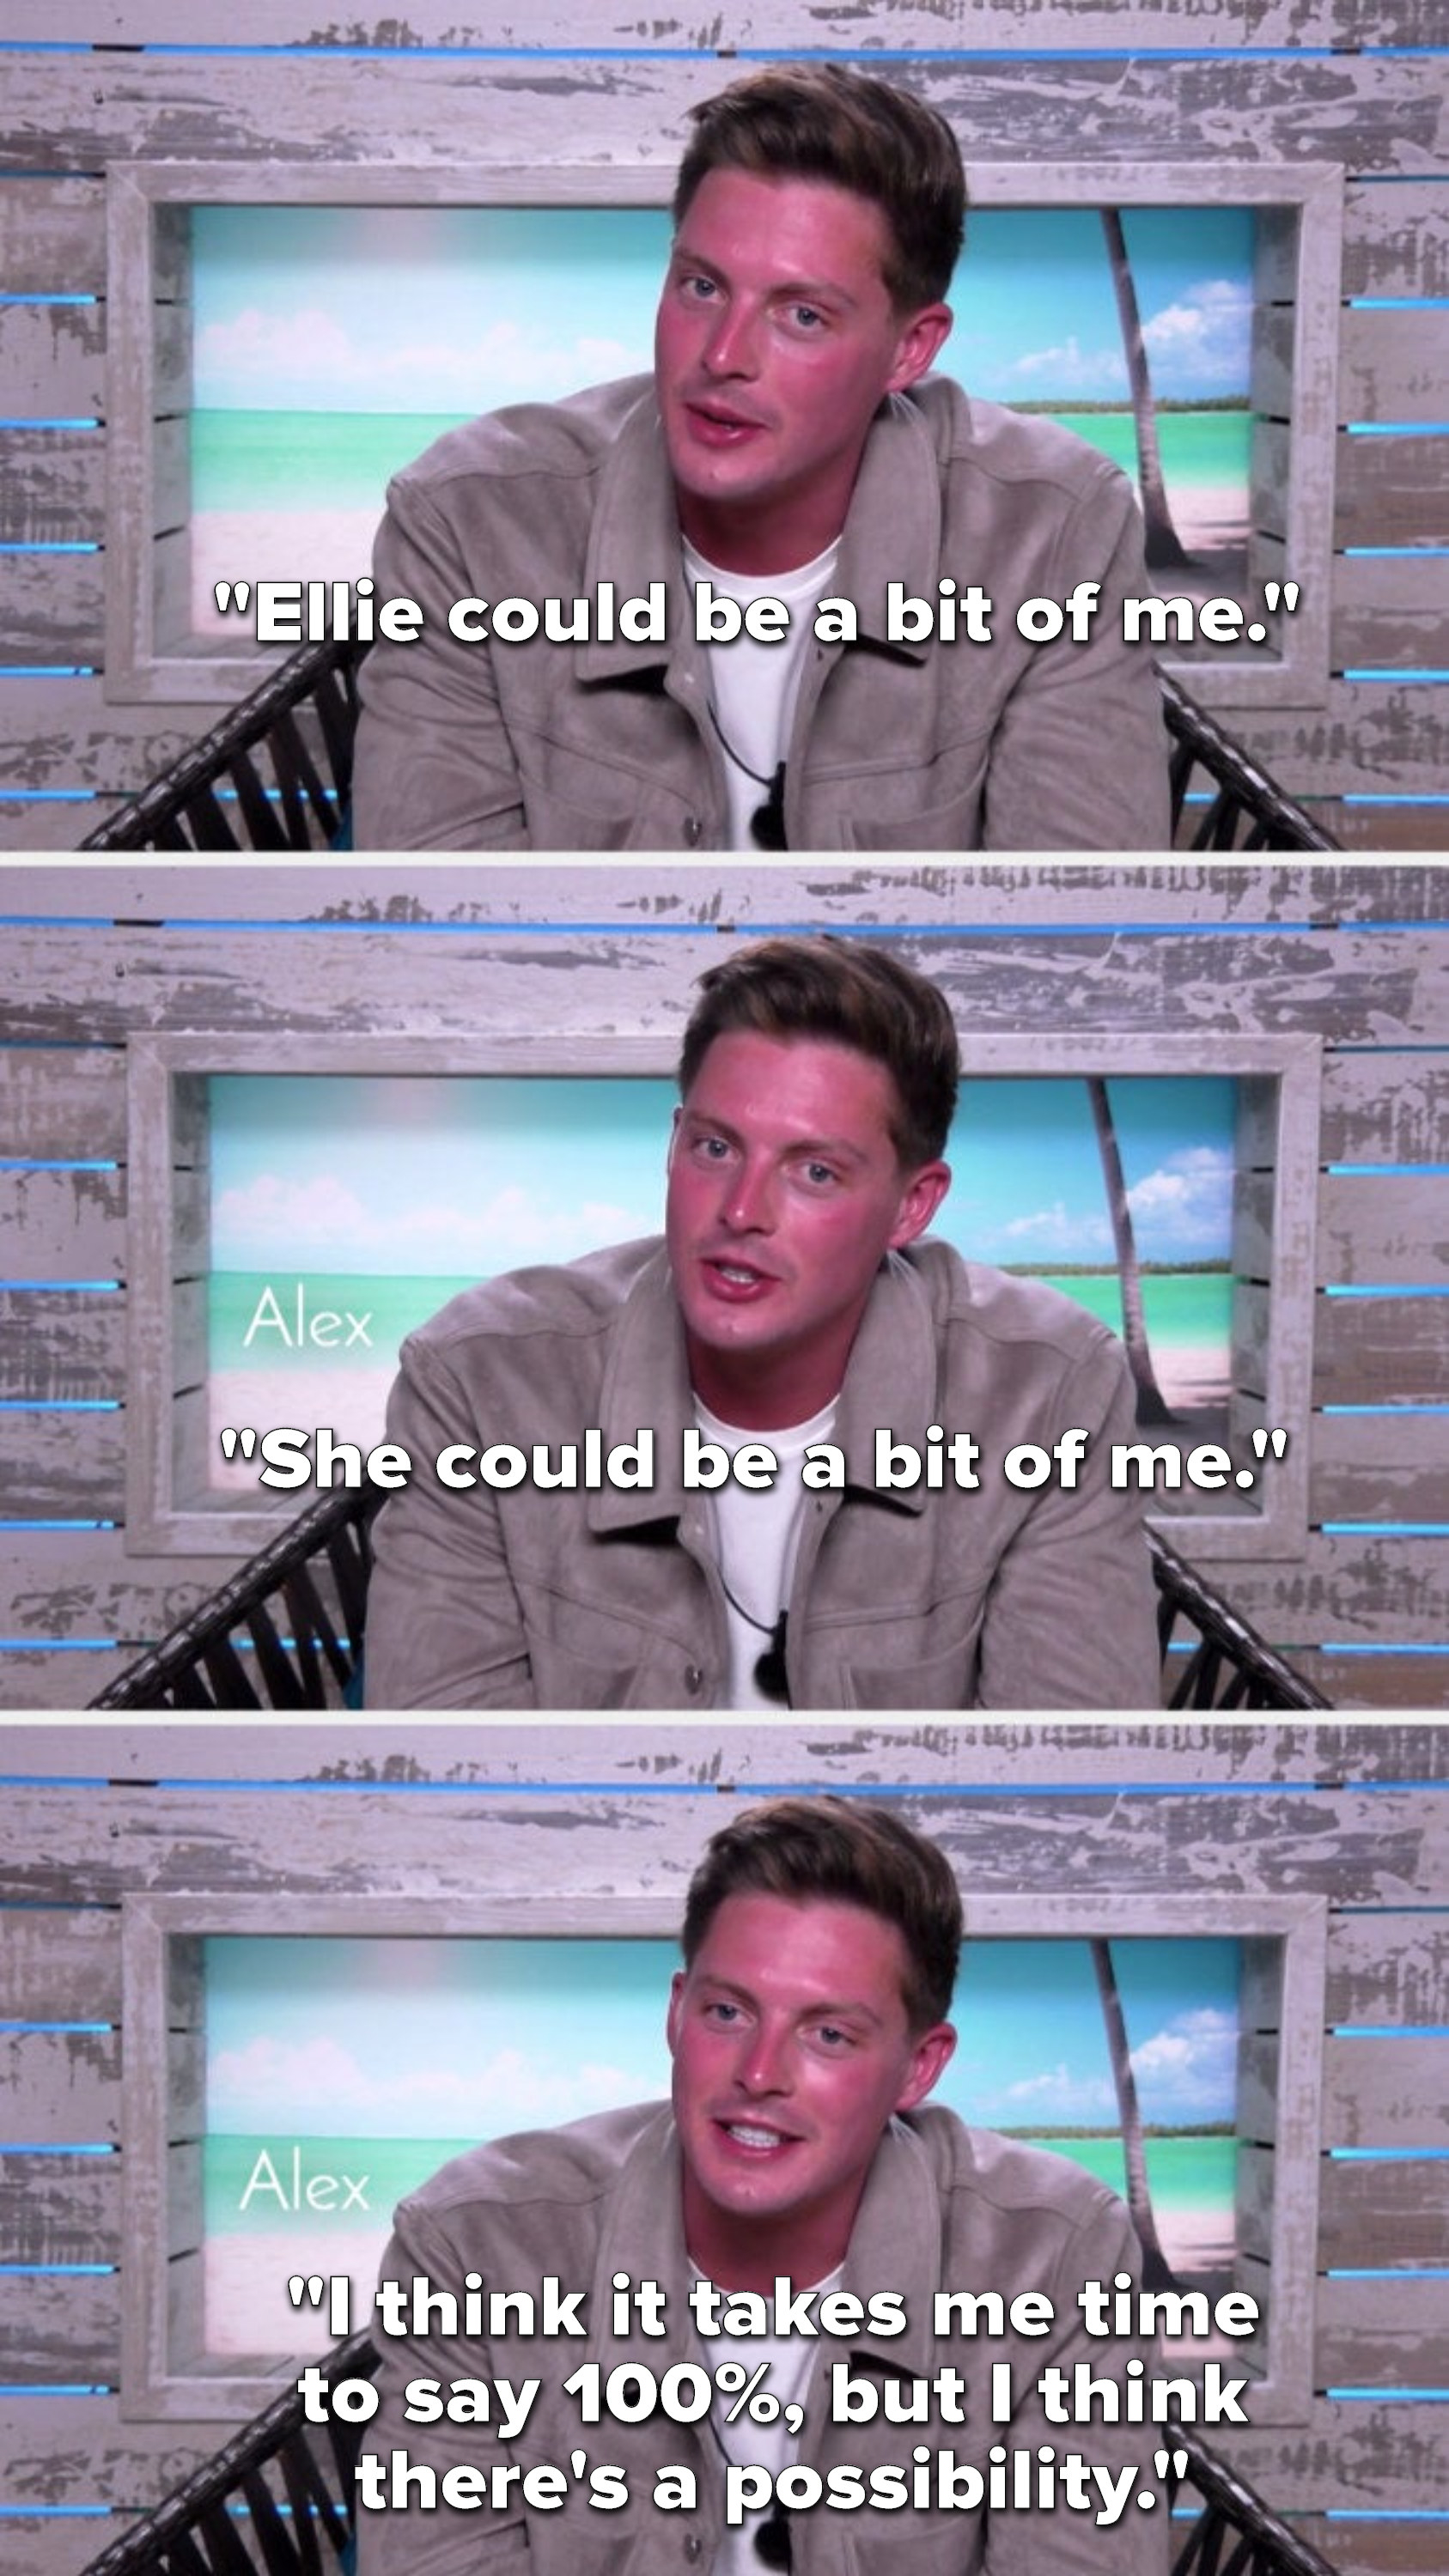 """Dr. Alex says, """"Ellie could be a bit of me; she could be a bit of me; I think it takes me time to say 100%, but I think there's a possibility"""""""